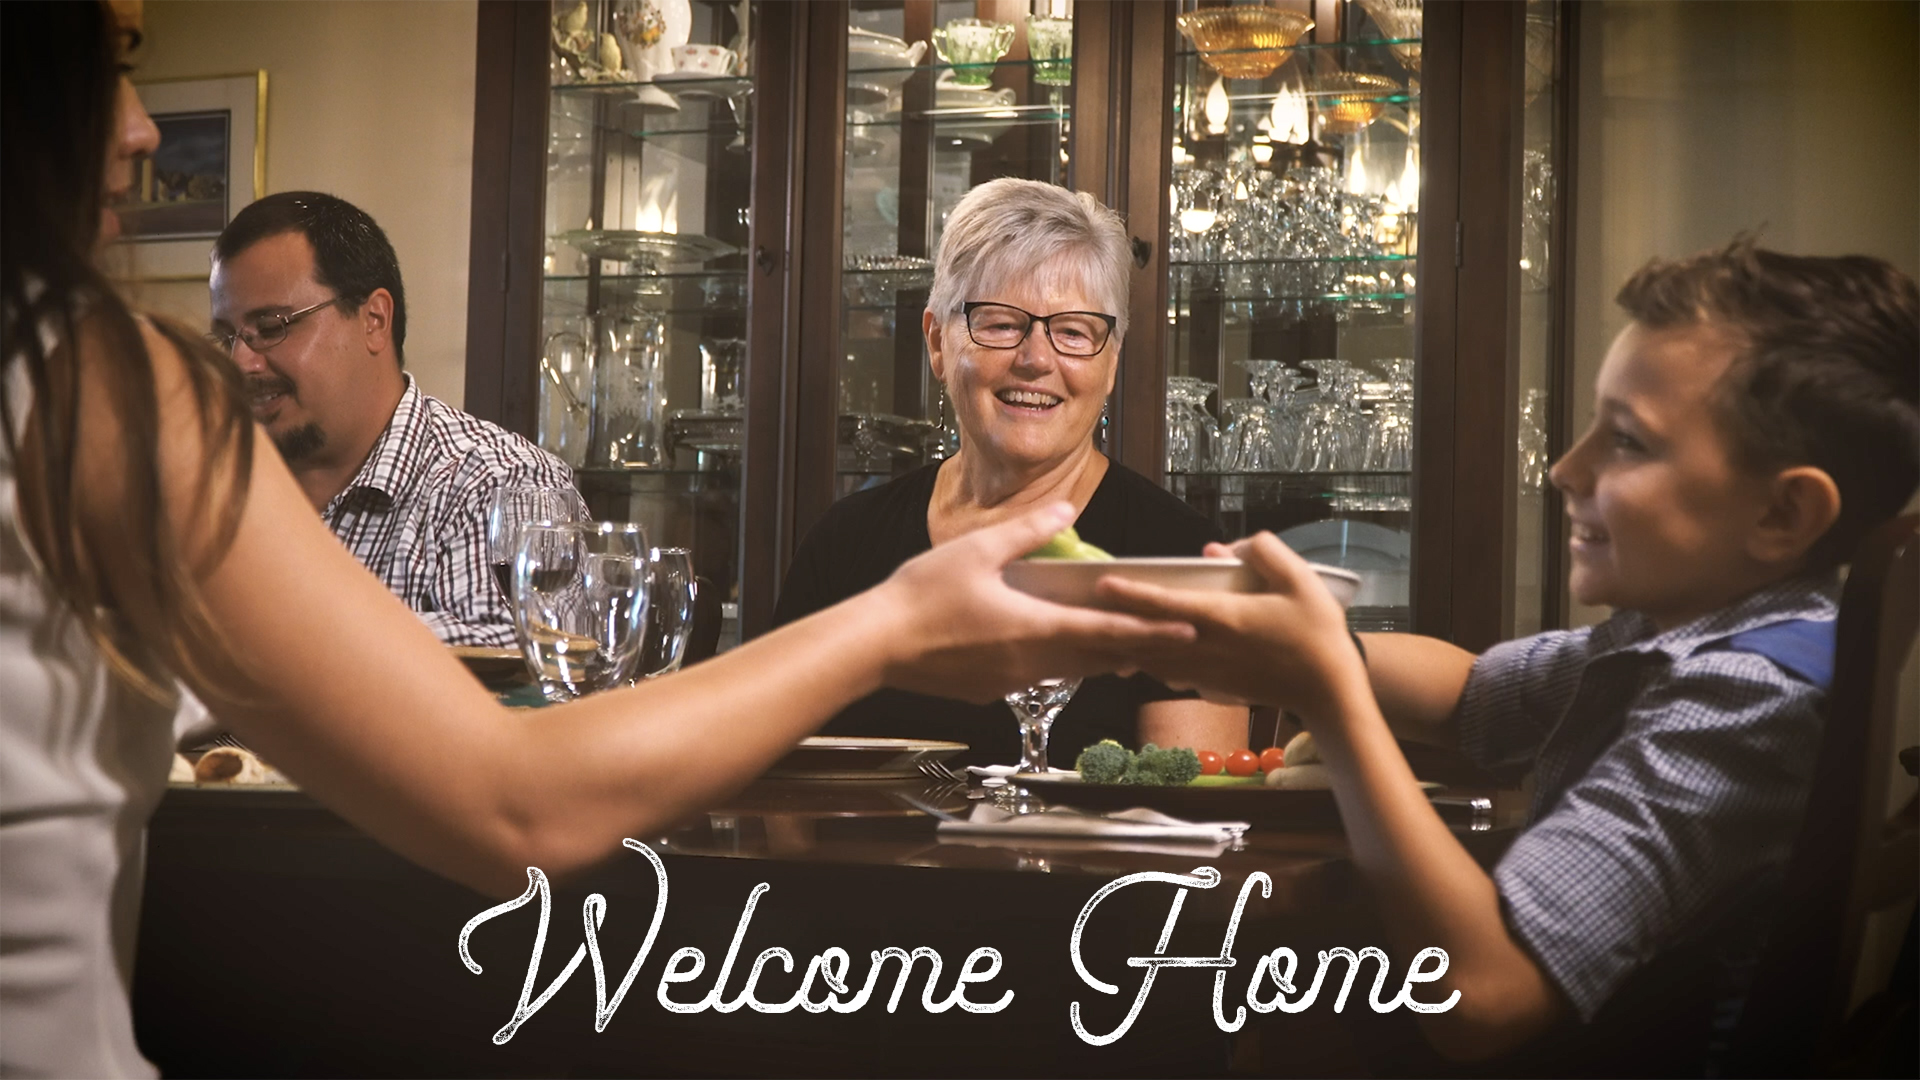 welcome home Heirloom quality furniture video